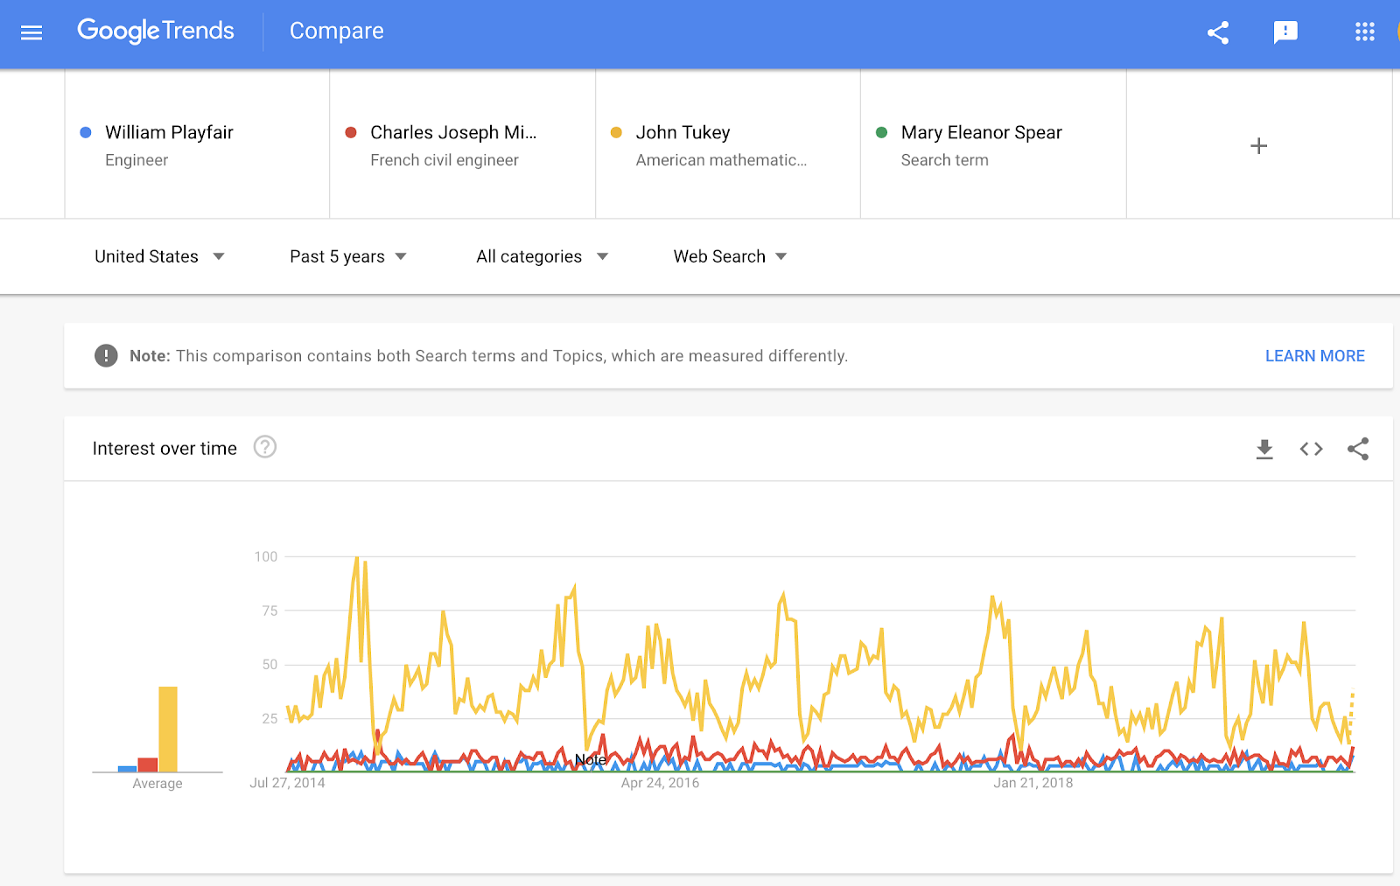 Screenshot of Google Search Trends results comparing searches for four dataviz pioneers